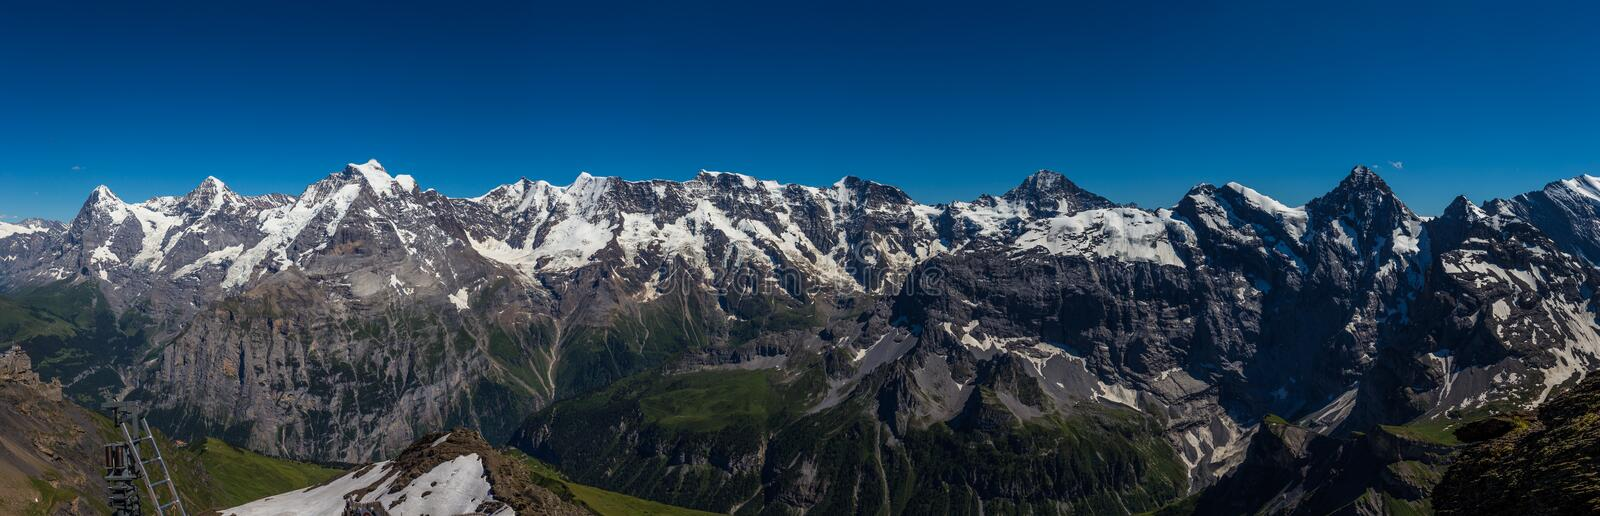 Stunning Panoramic view of Swiss Alps, Jungfrau mountain range from schilthorn, Murren, Switzerland royalty free stock photo